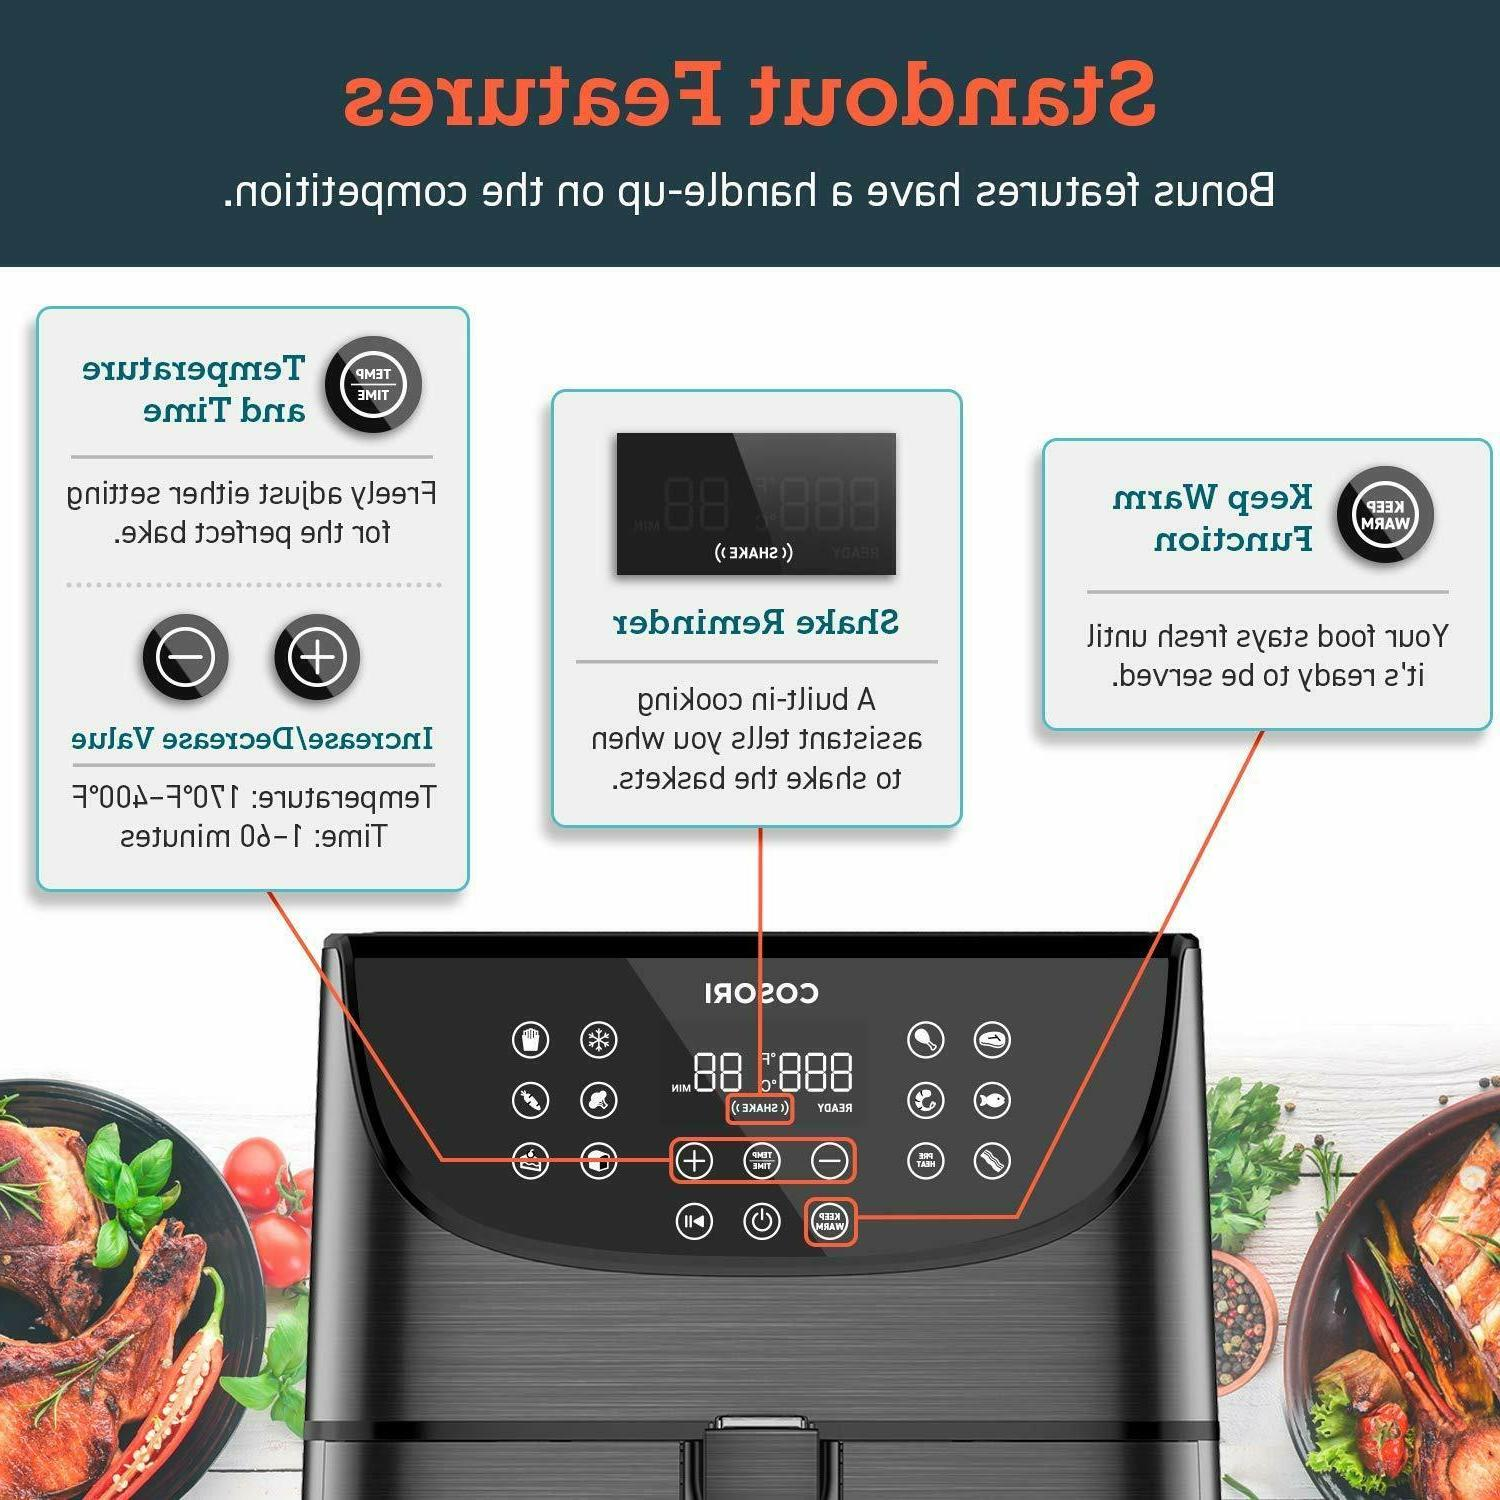 XL Air Oven & Oill